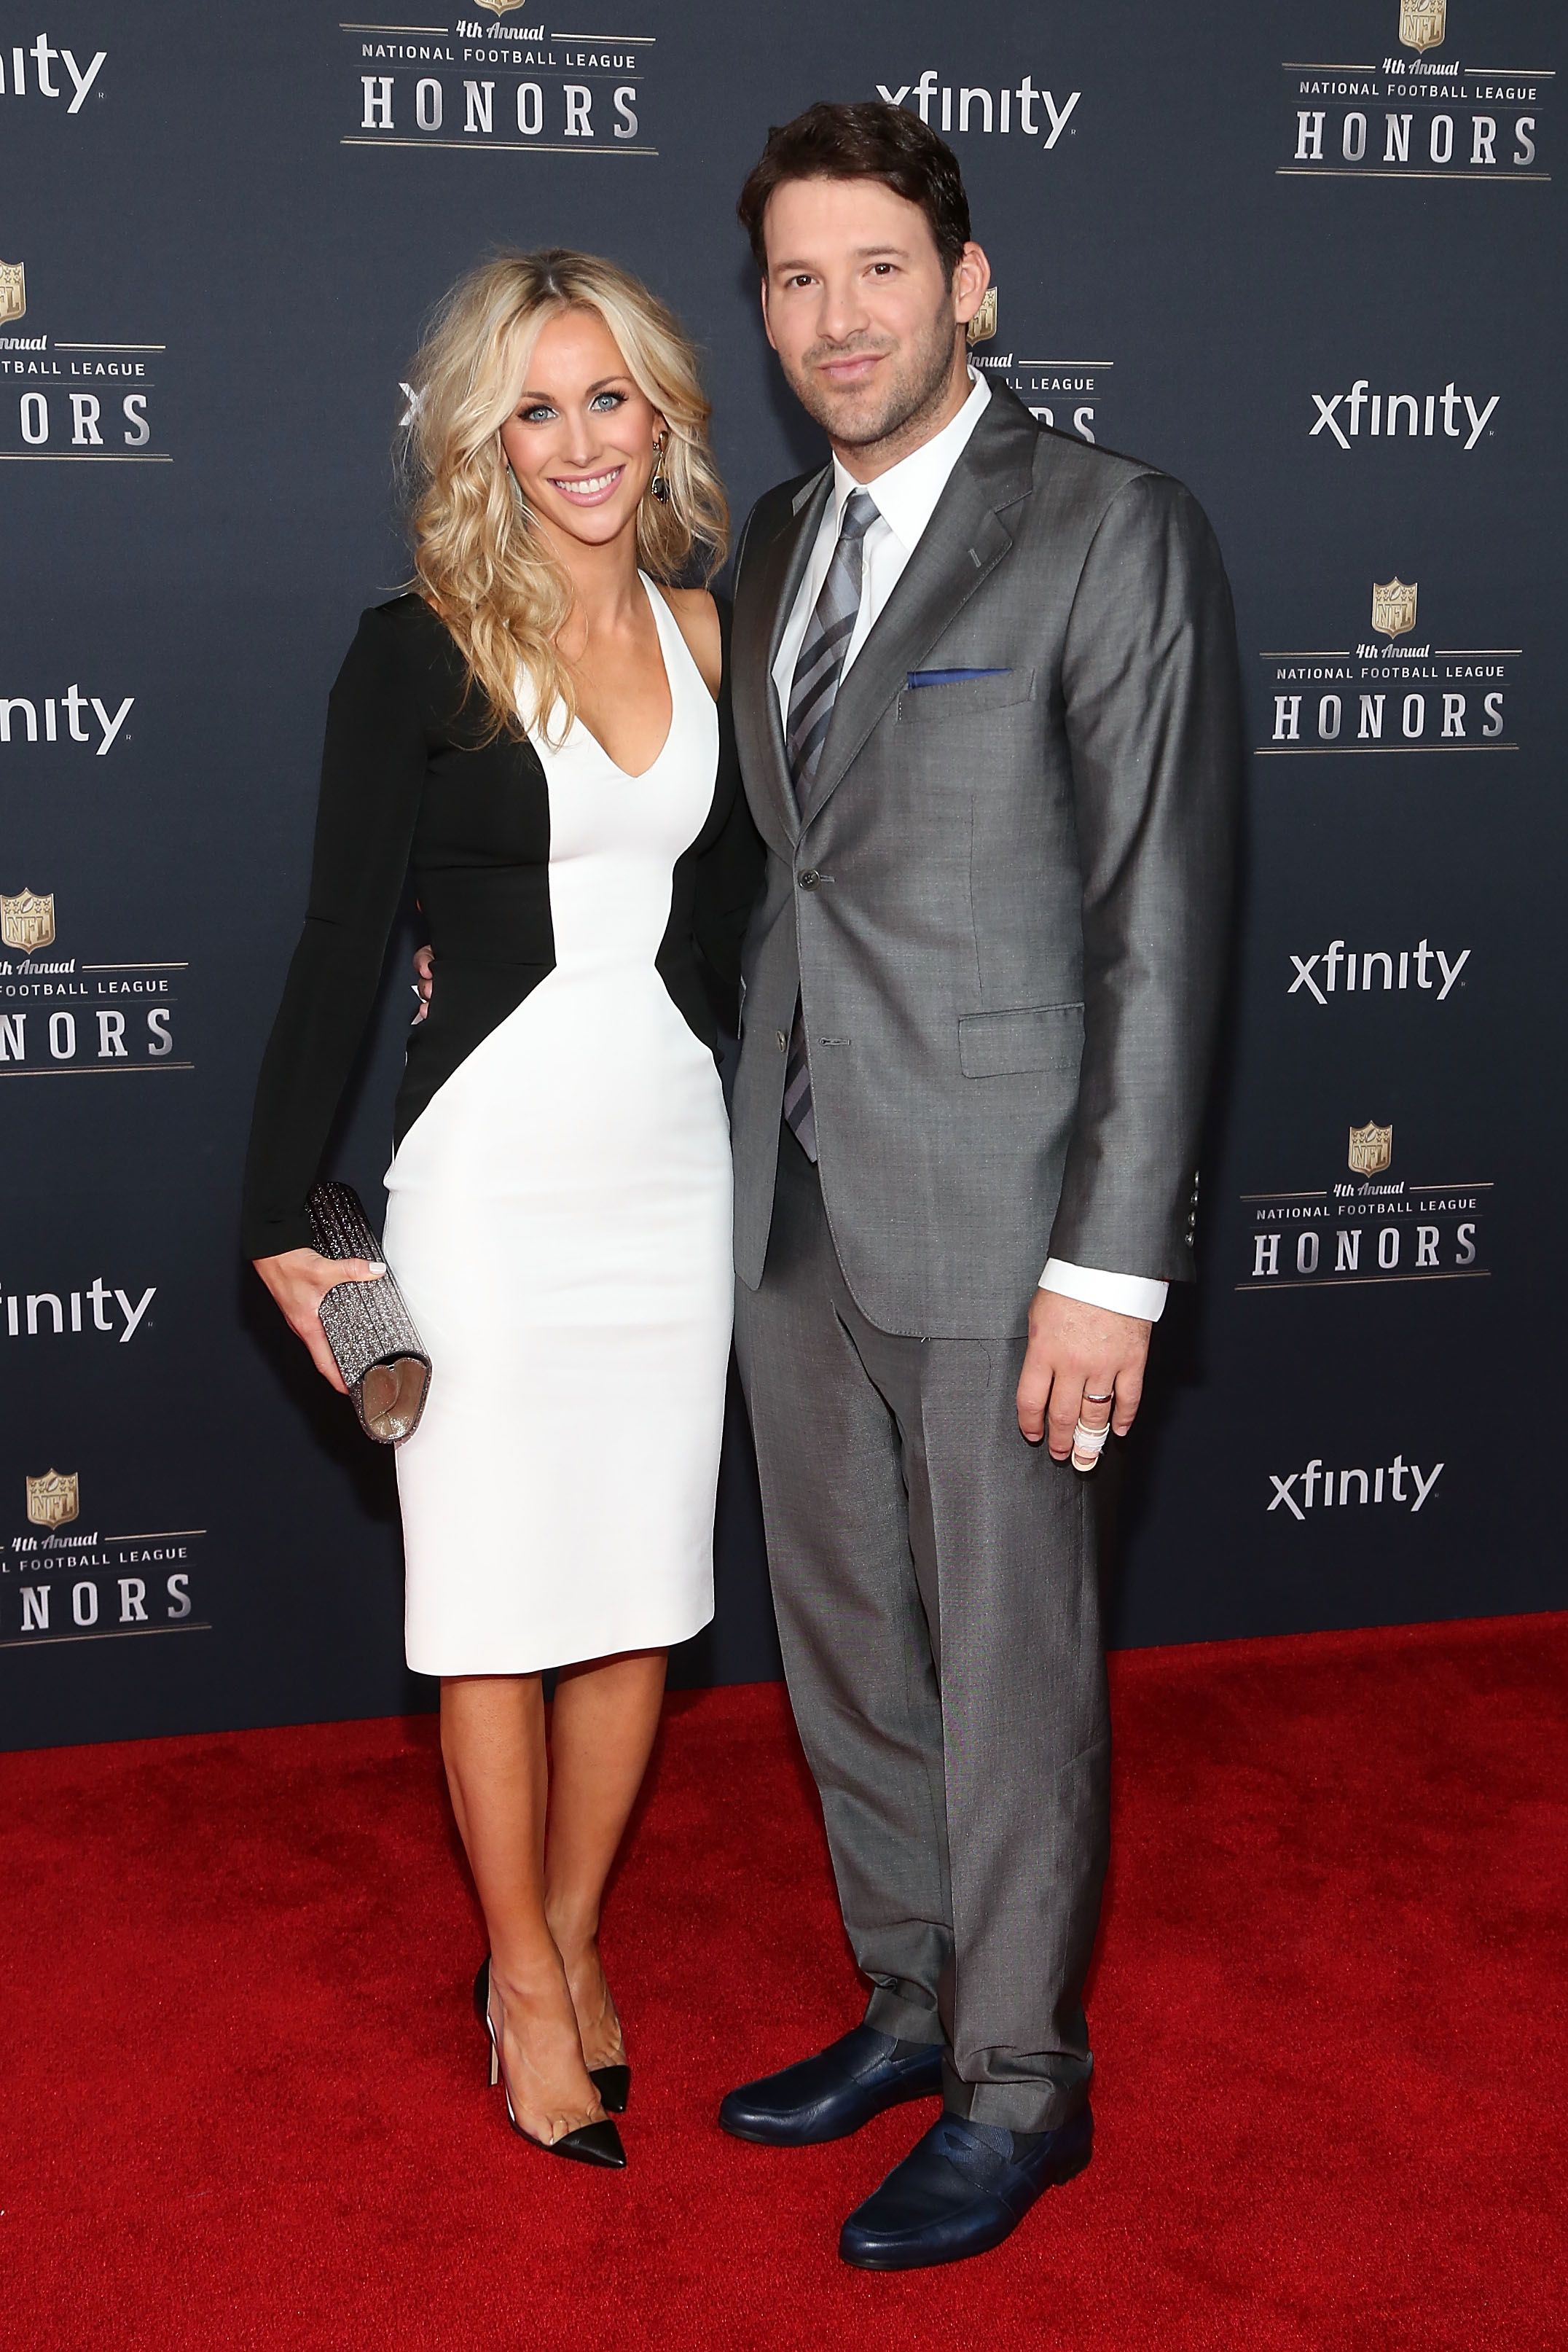 Candice Crawford and Tony Romo during the 2015 NFL Honors at Phoenix Convention Center on January 31, 2015 in Phoenix, Arizona. | Source: Getty Images